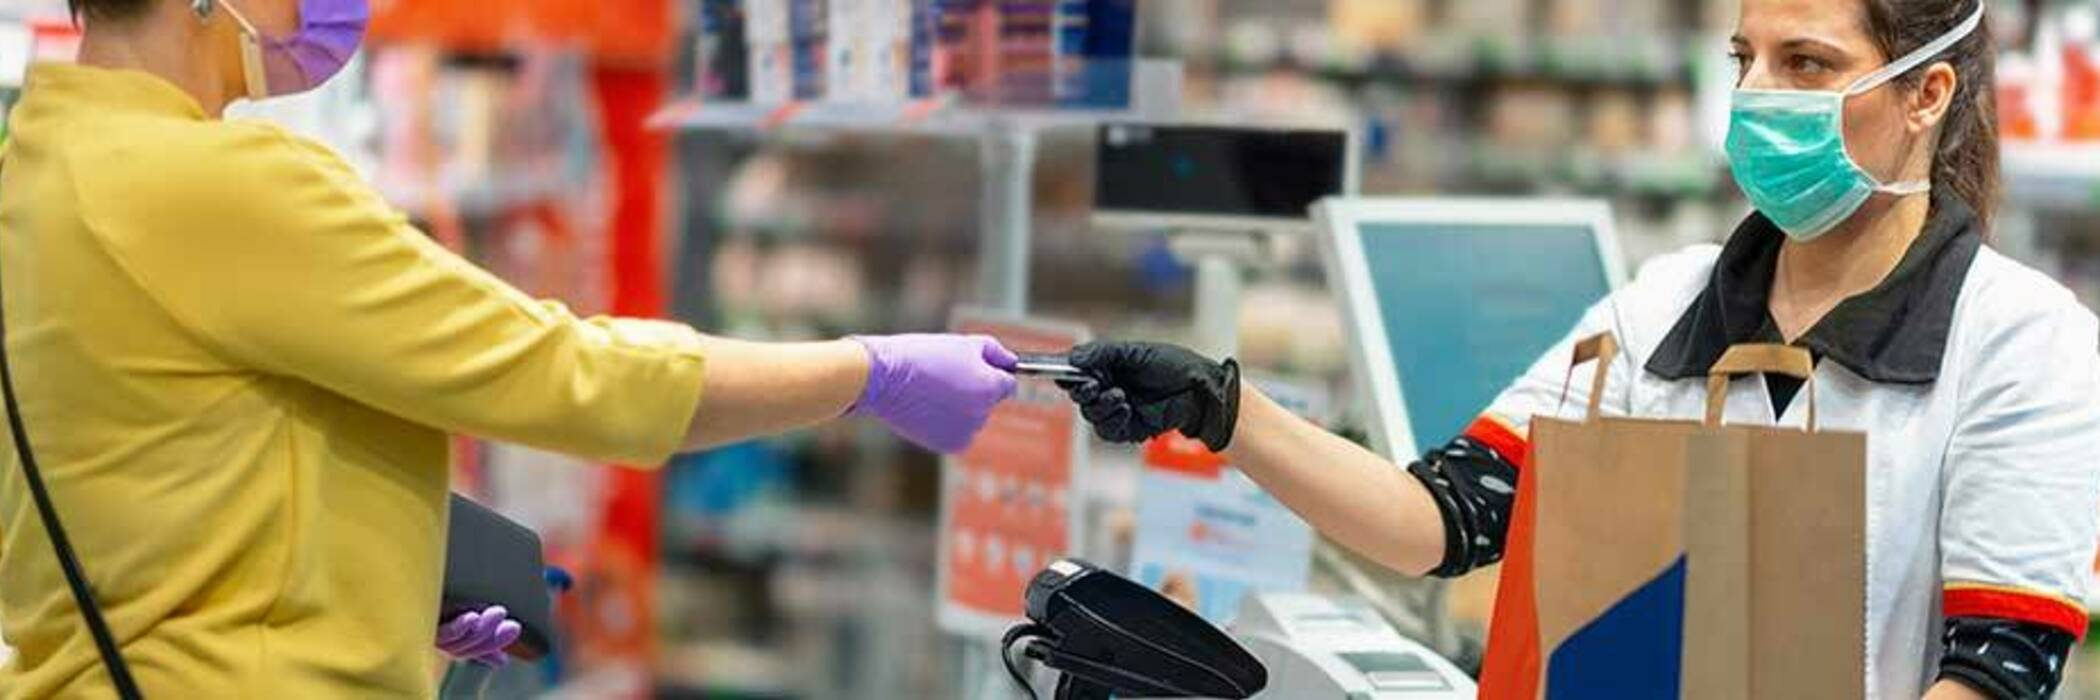 Customer and cashier making a payment in a pharmacy.